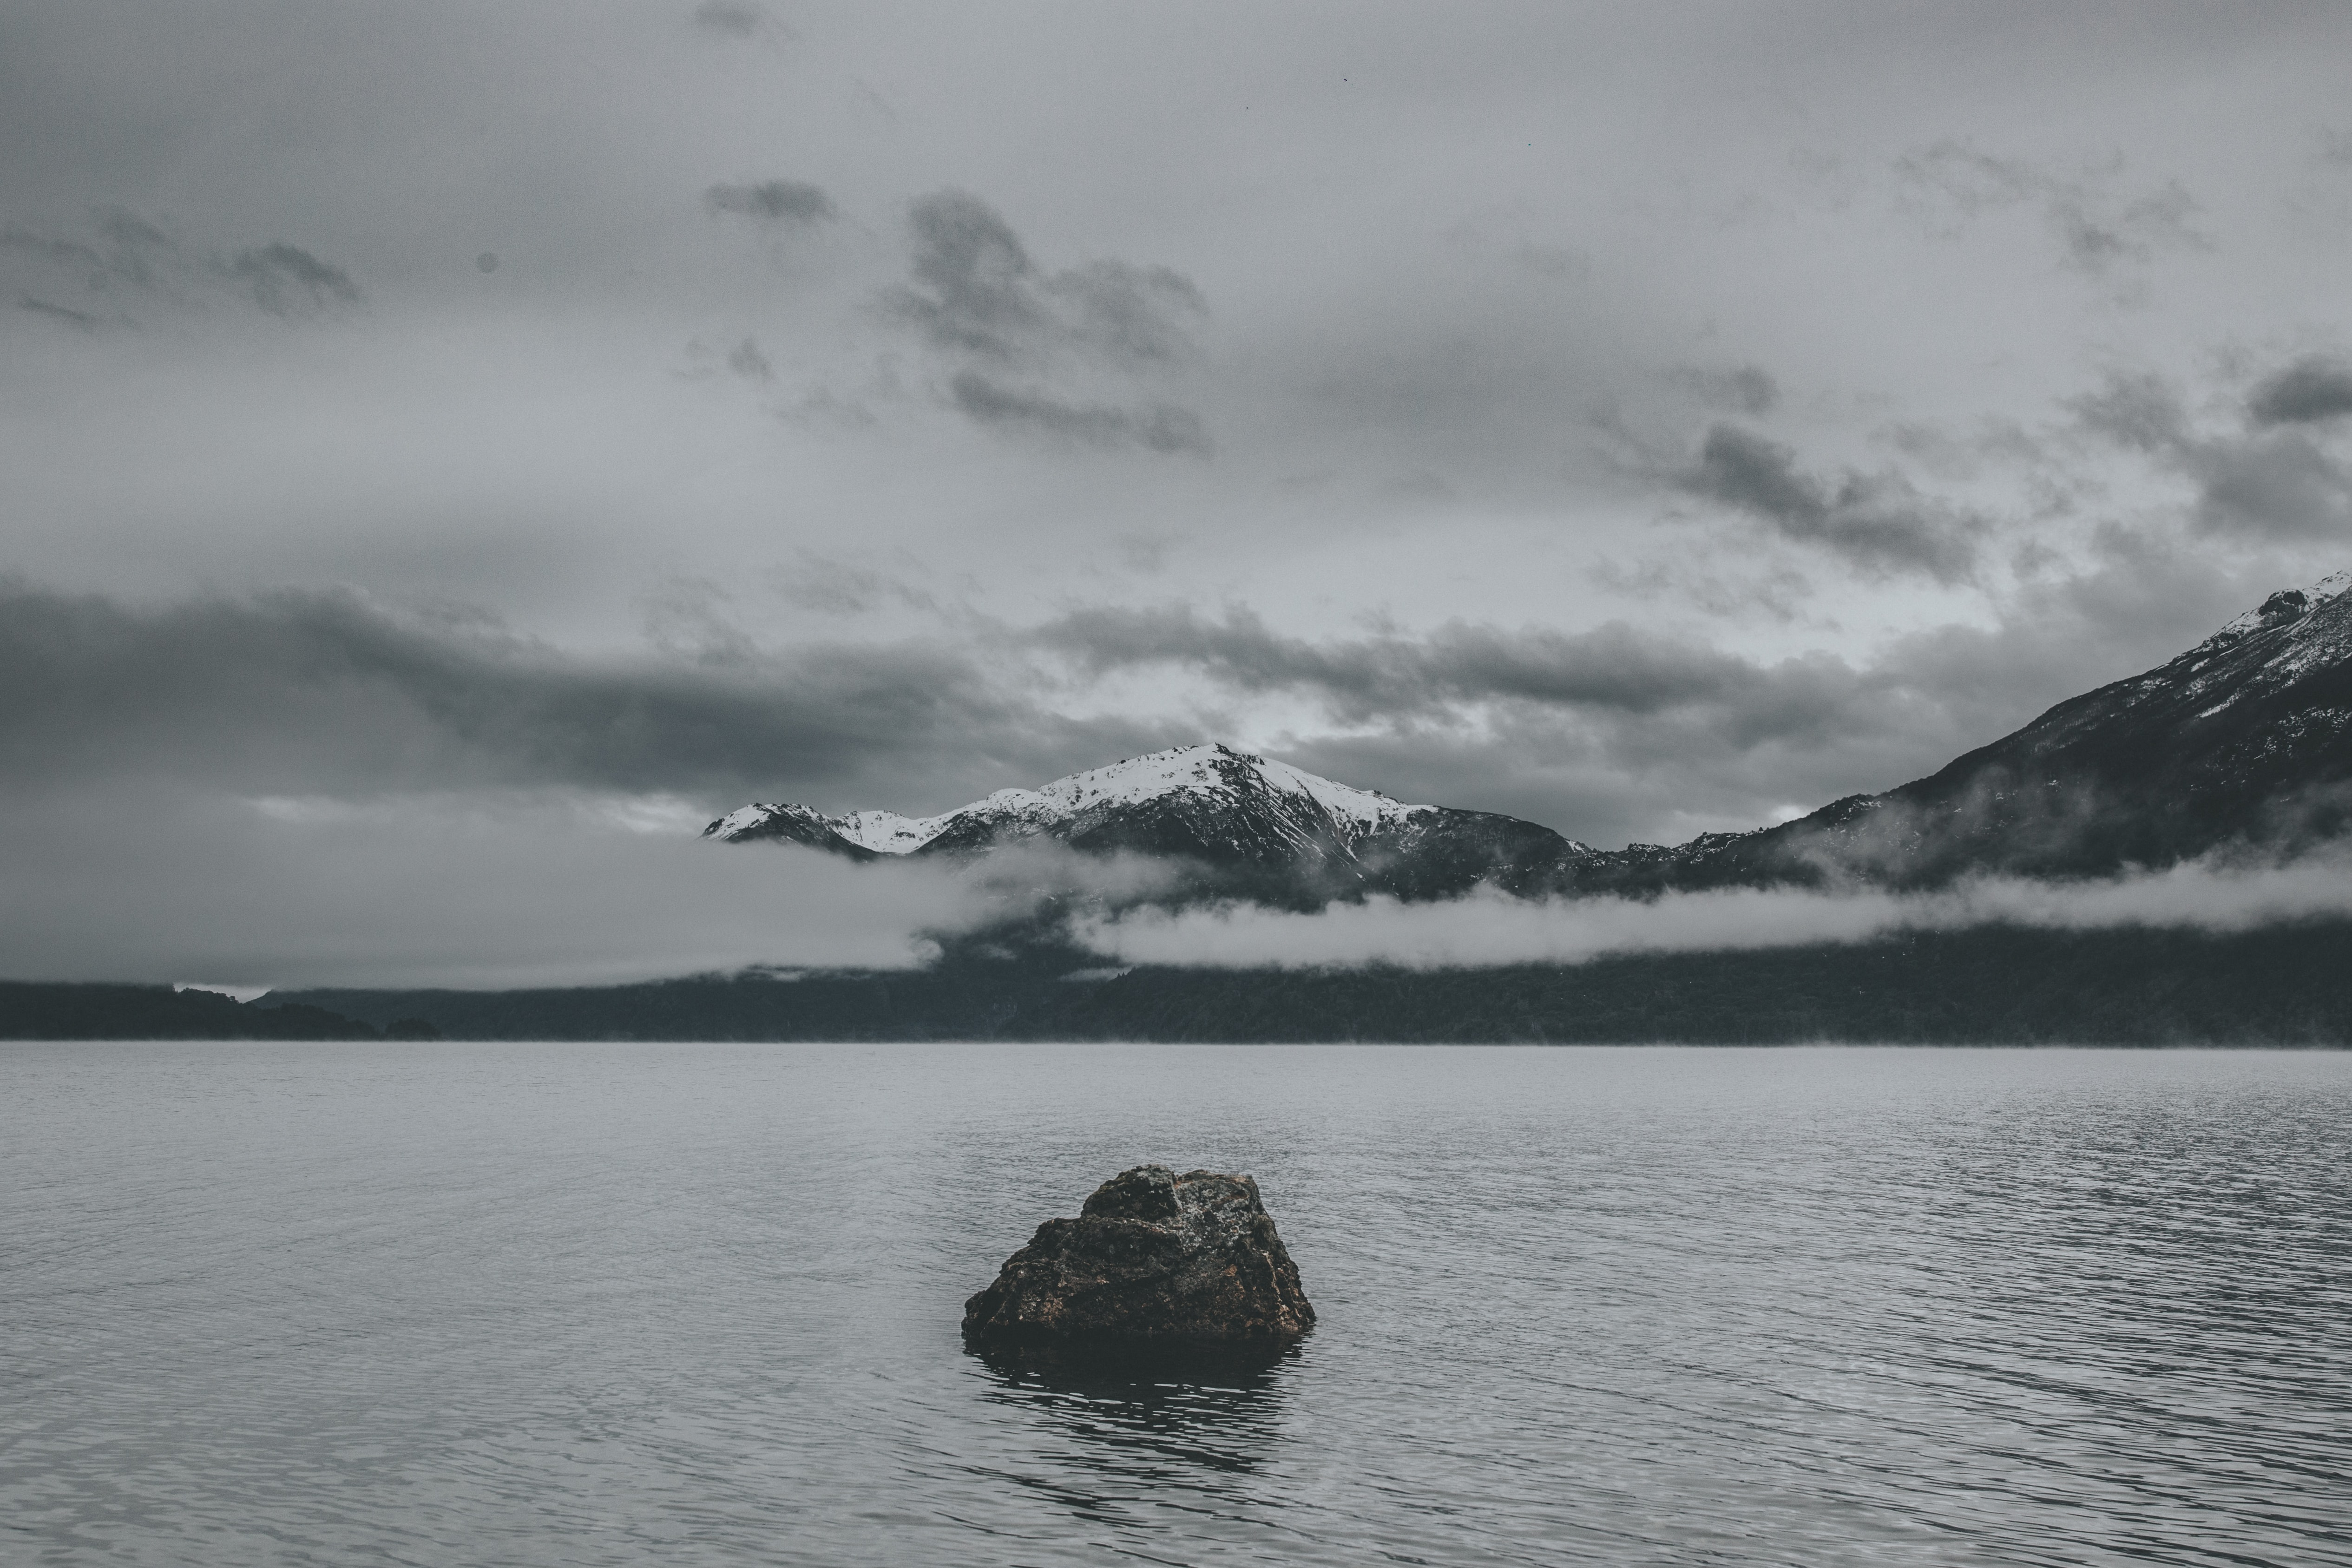 body of water near mountain under the cloudy sky